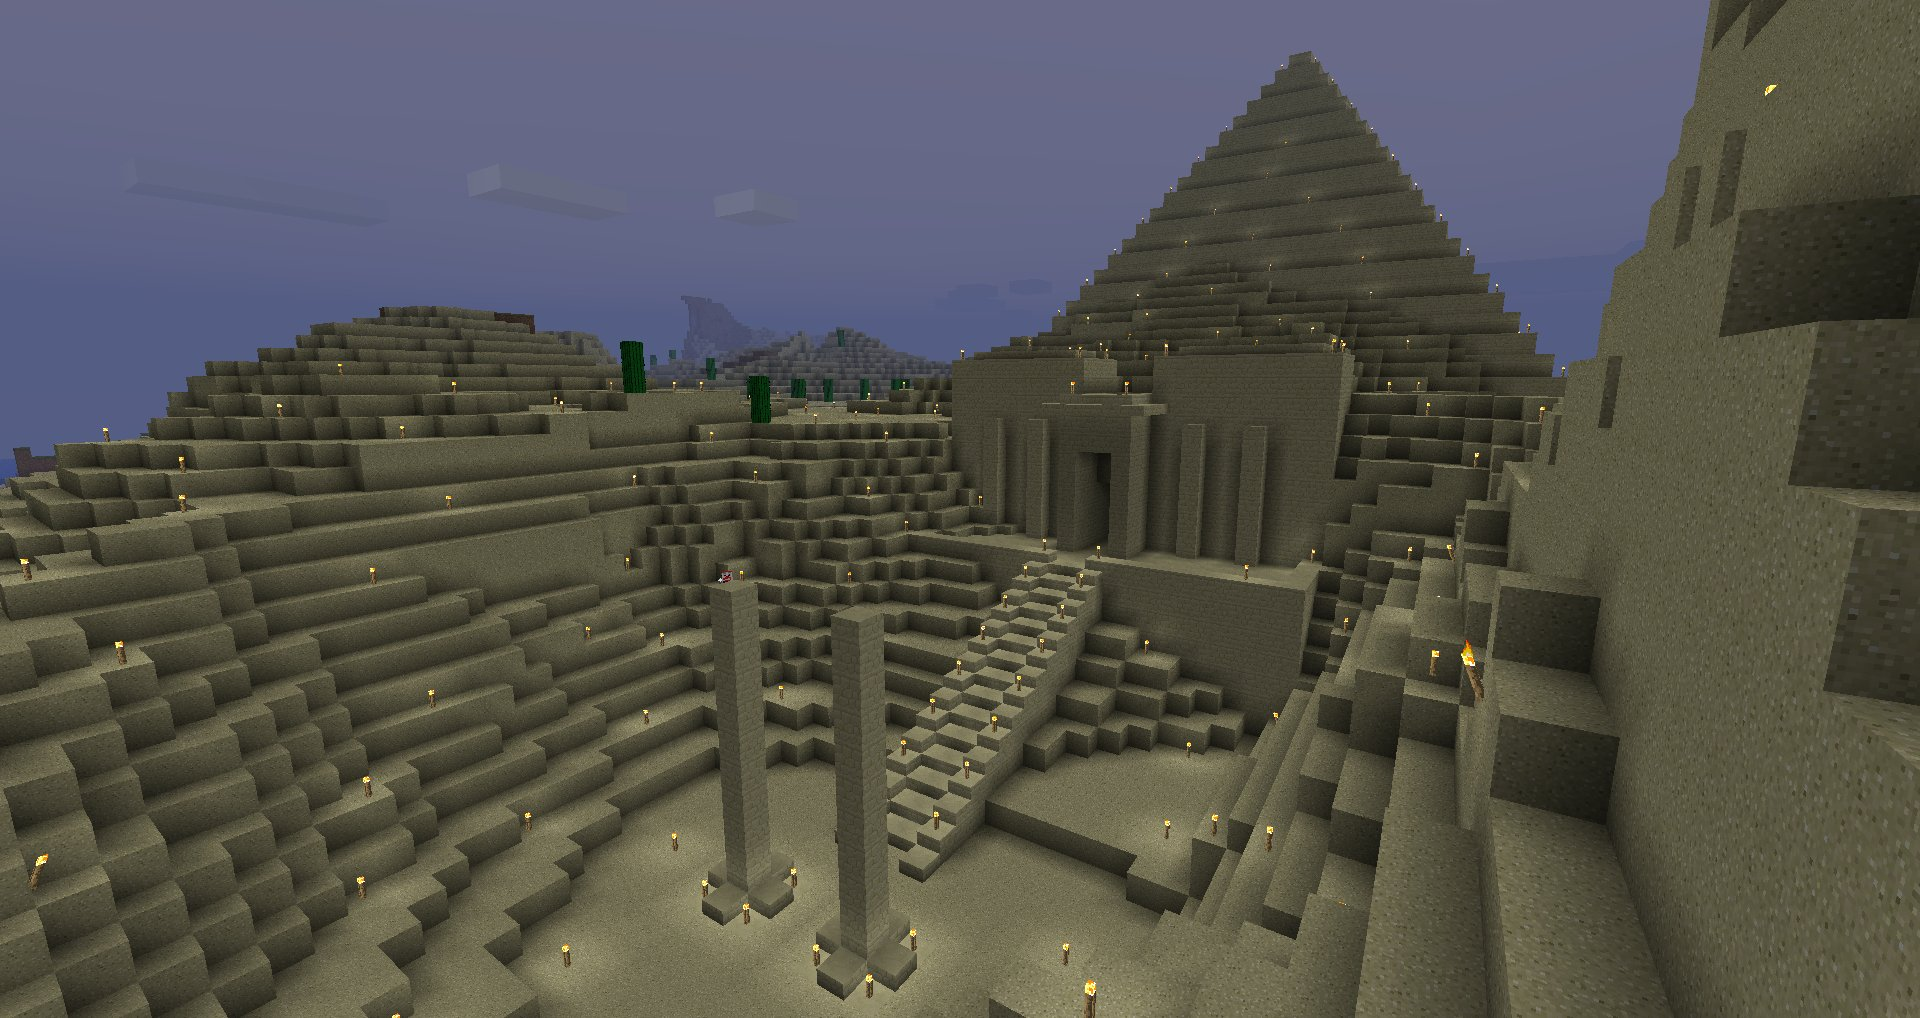 [Monument] Temple d'Abydos 5f1a4843-7870-4978-8c61-b283c5033f1f